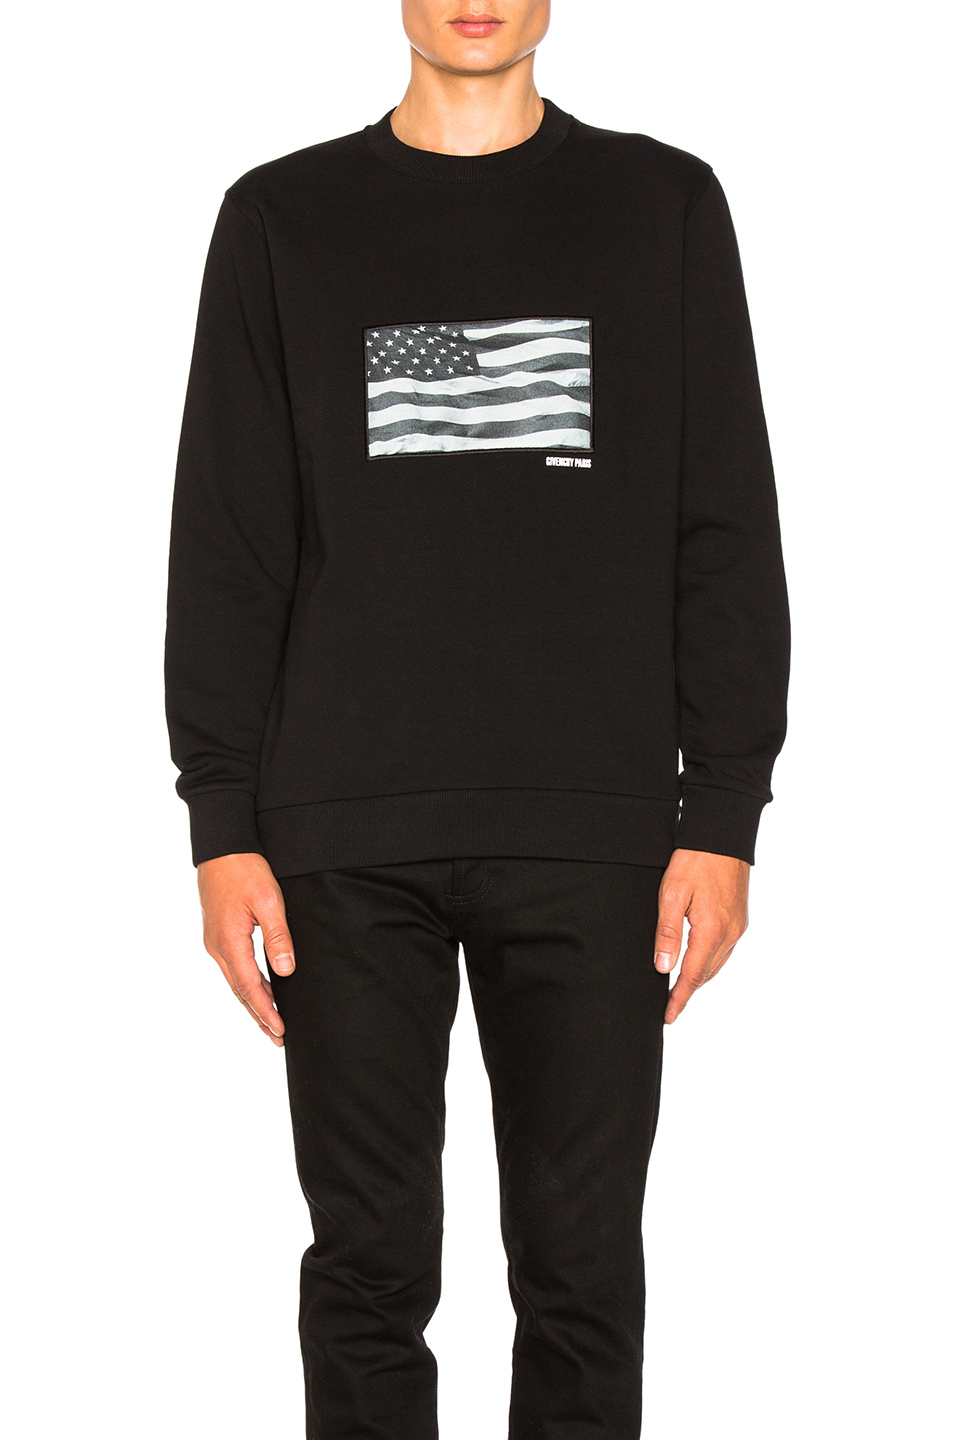 Givenchy American Flag Print Sweatshirt in Black